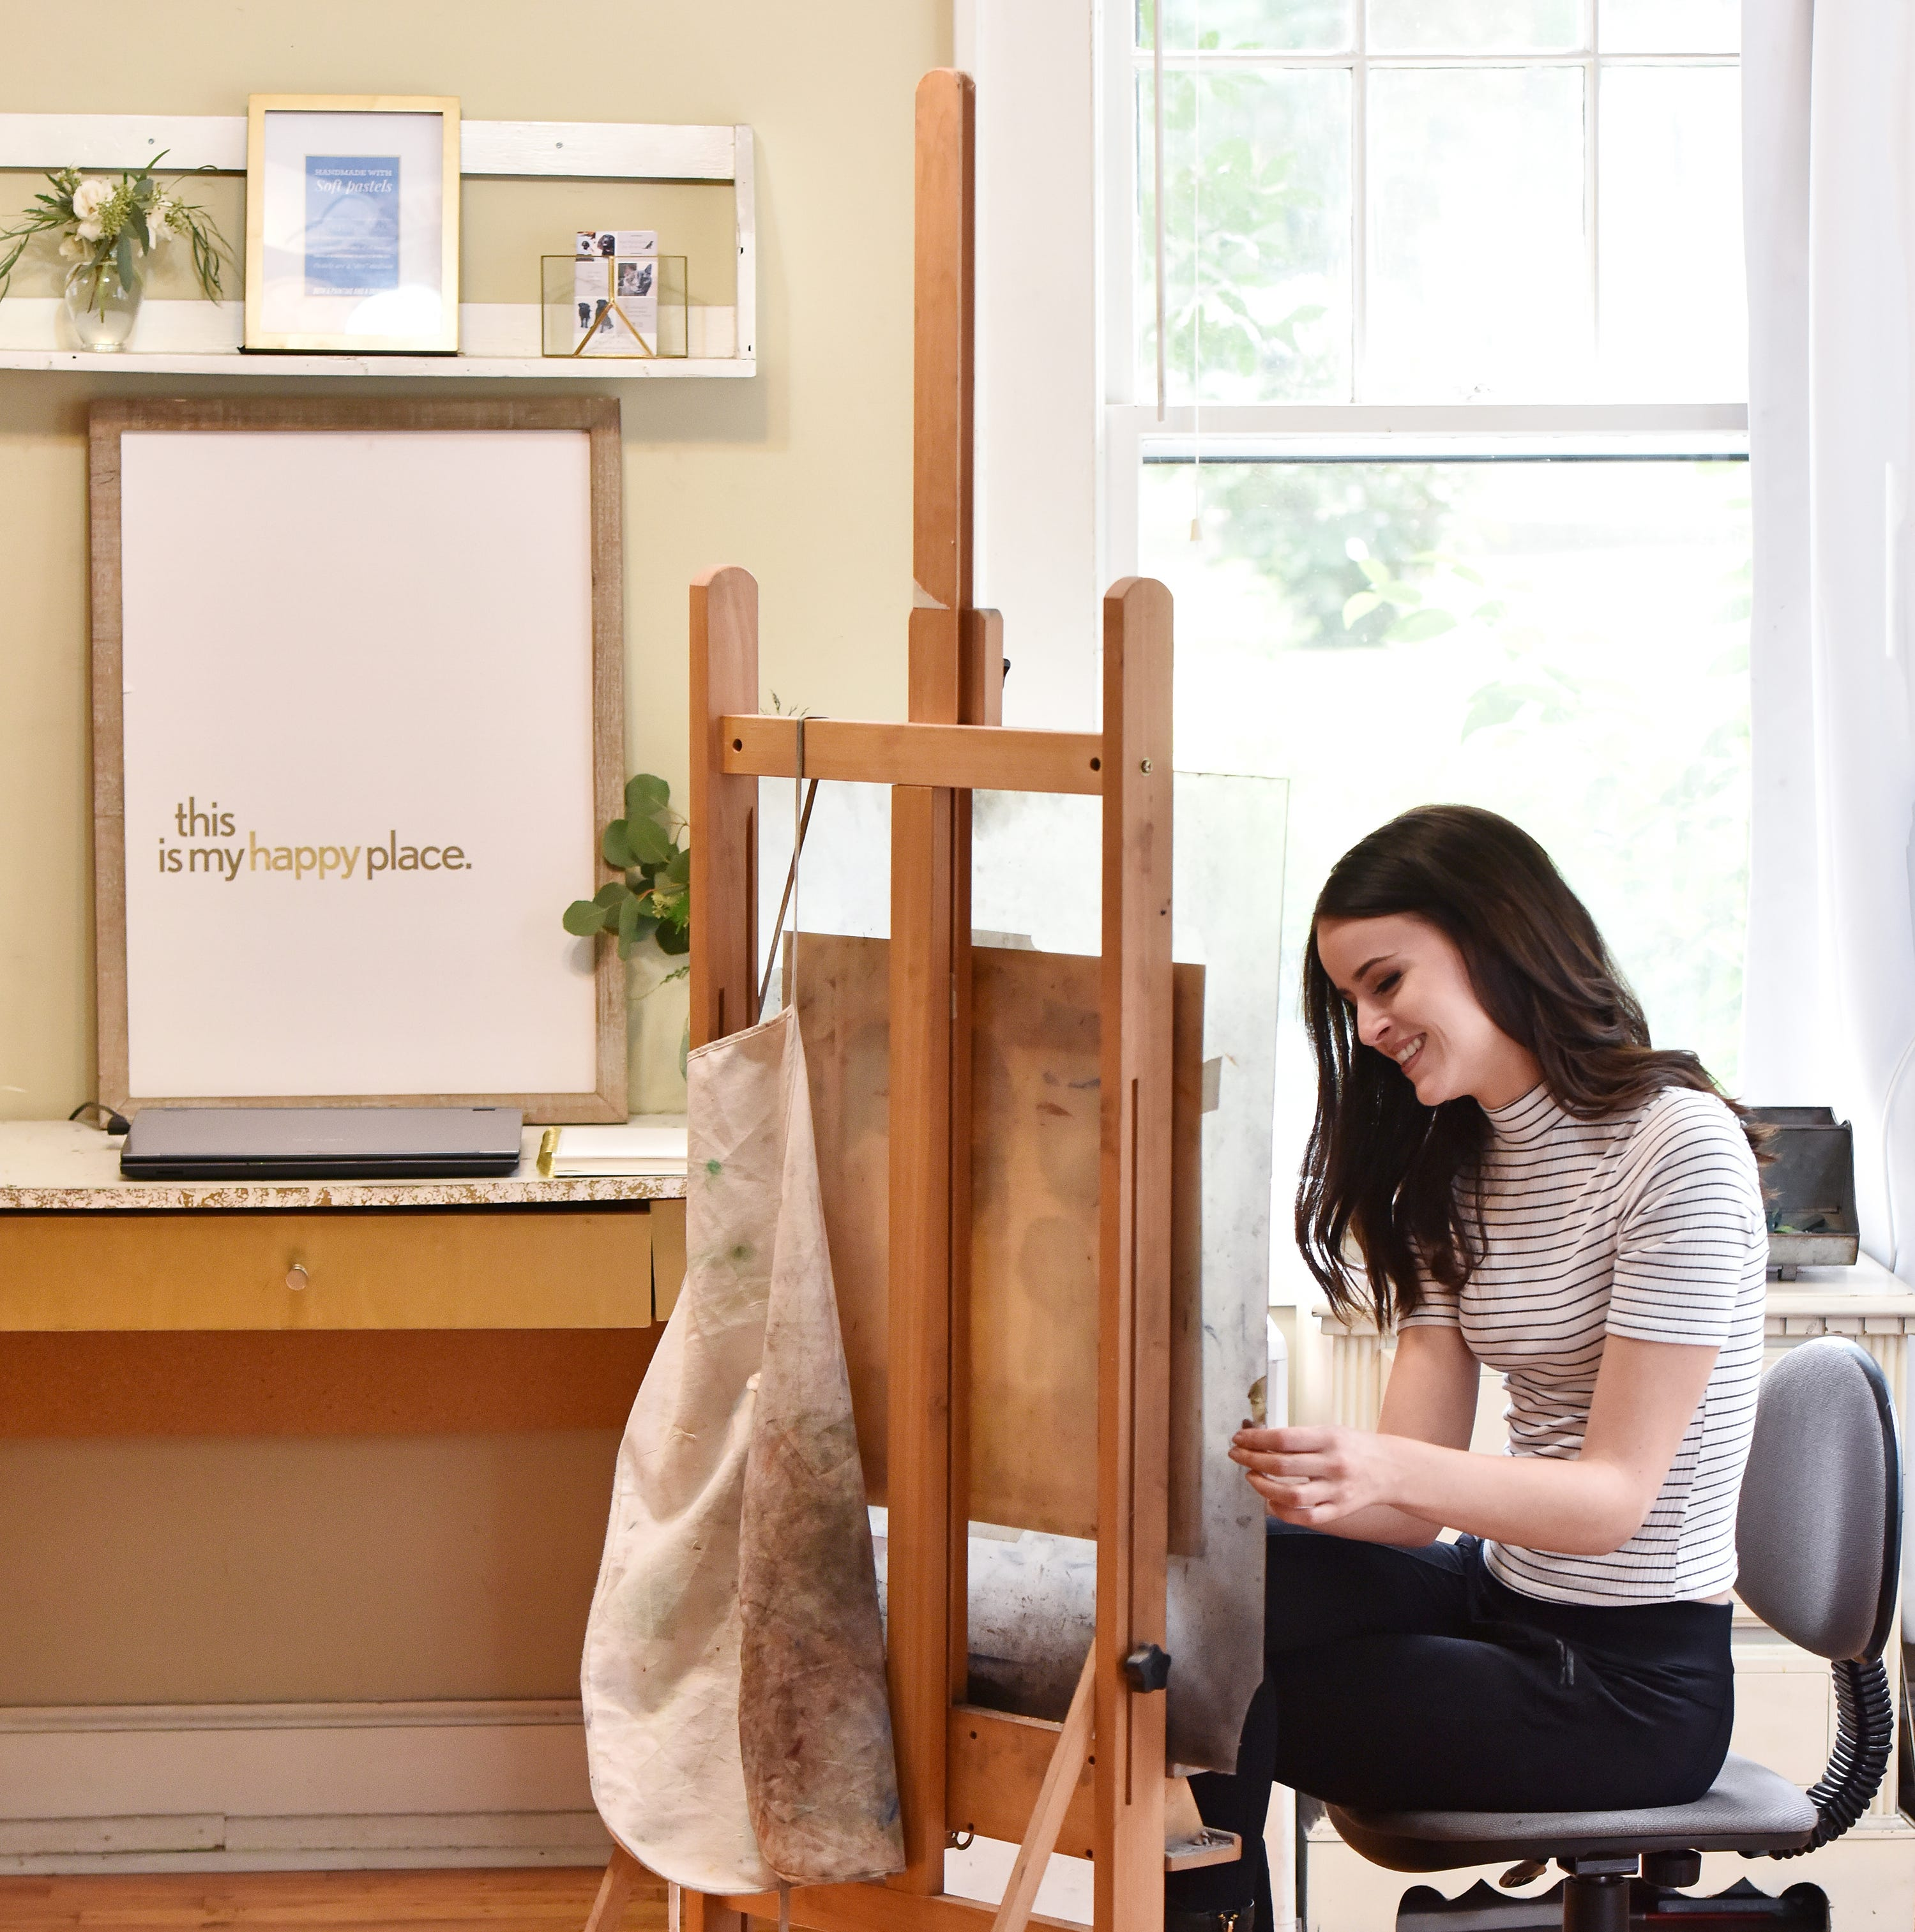 All About Art: Meet Olivia White